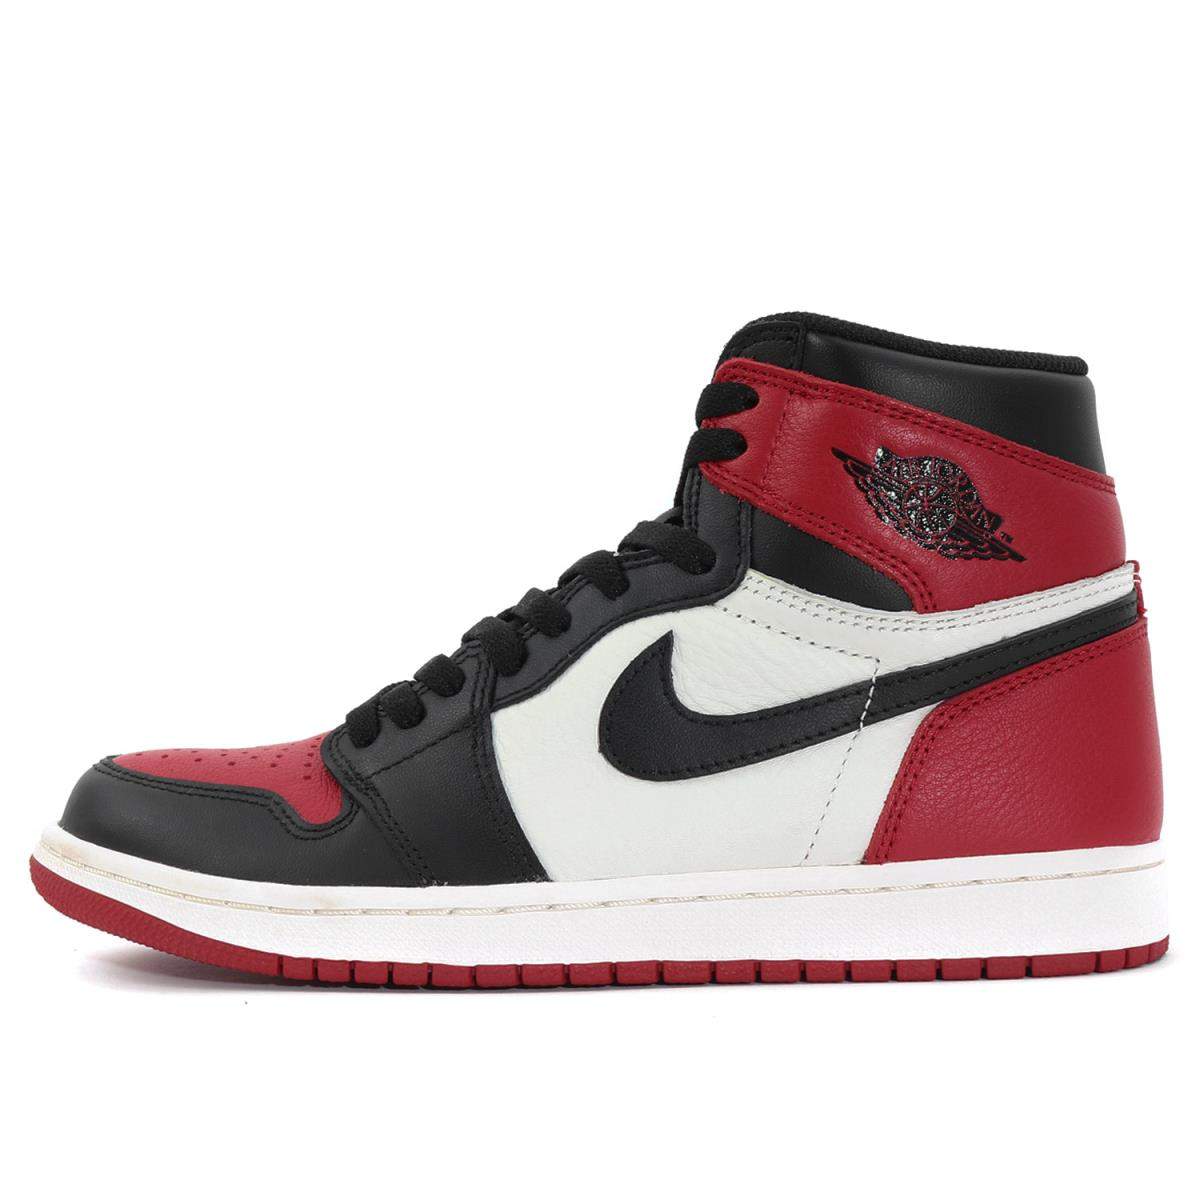 119c211b156a9e BEEGLE by Boo-Bee  NIKE (Nike) AIR JORDAN 1 RETRO HIGH OG BRED TOE ...